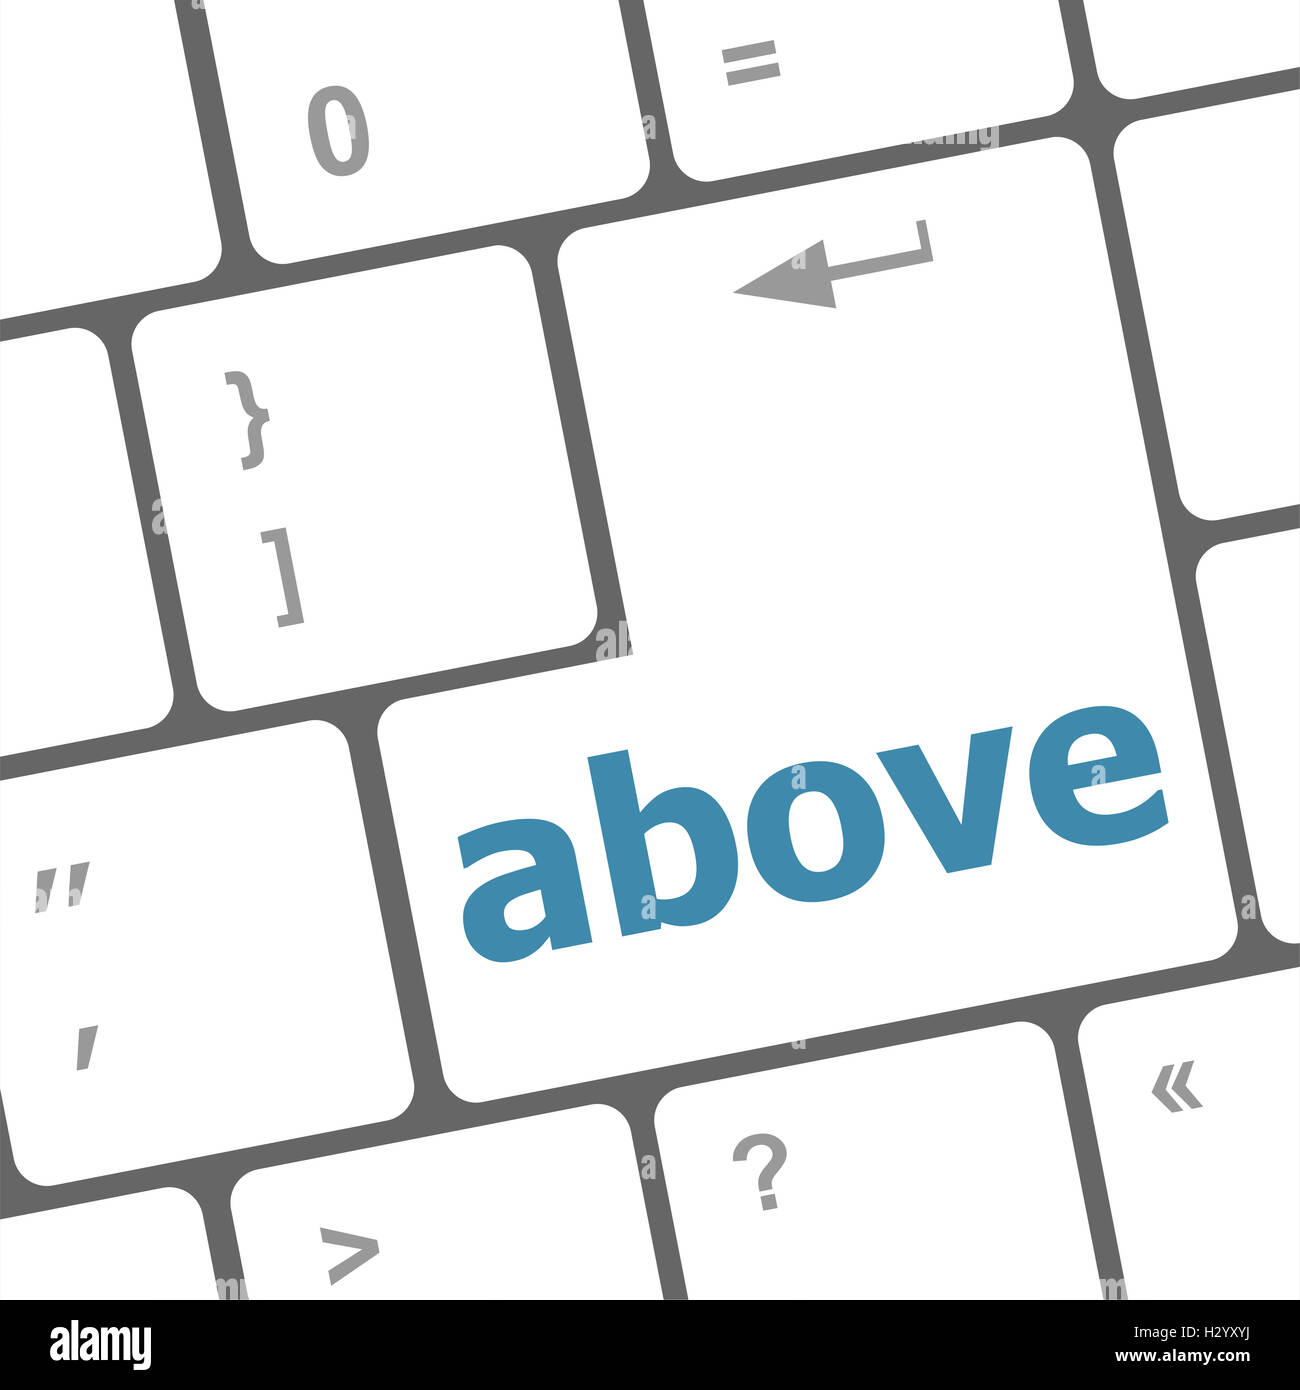 above on computer keyboard key enter button - Stock Image